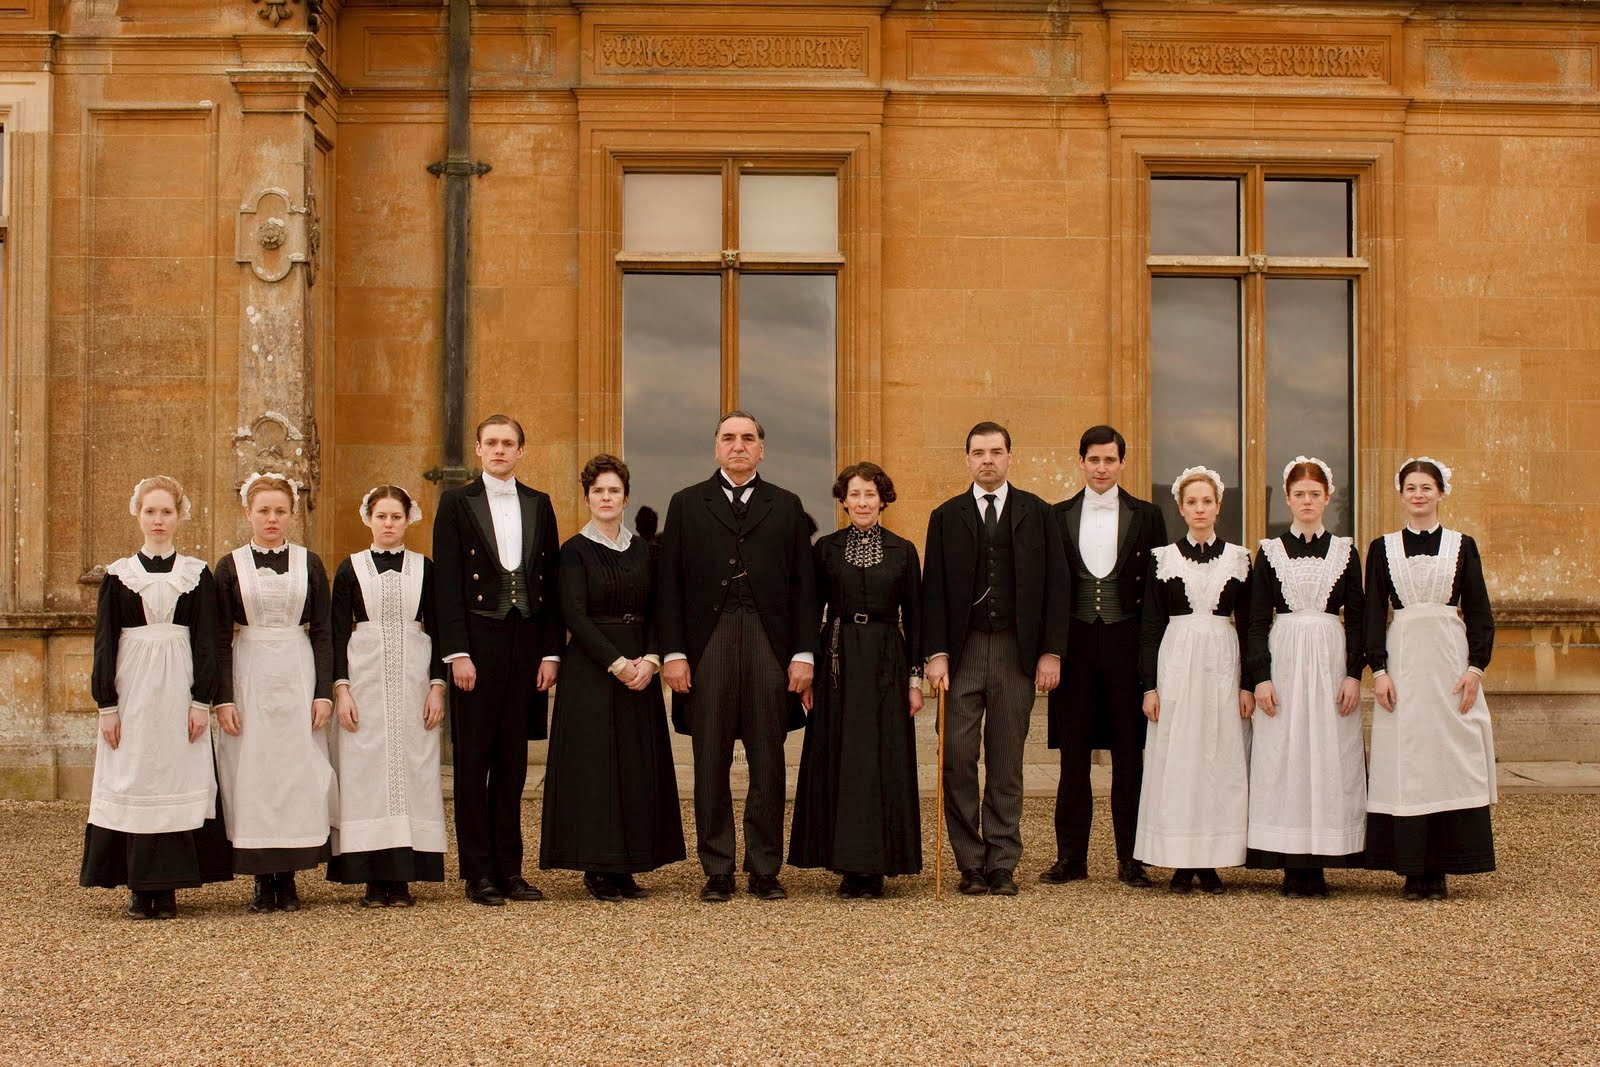 dowton abbey servants